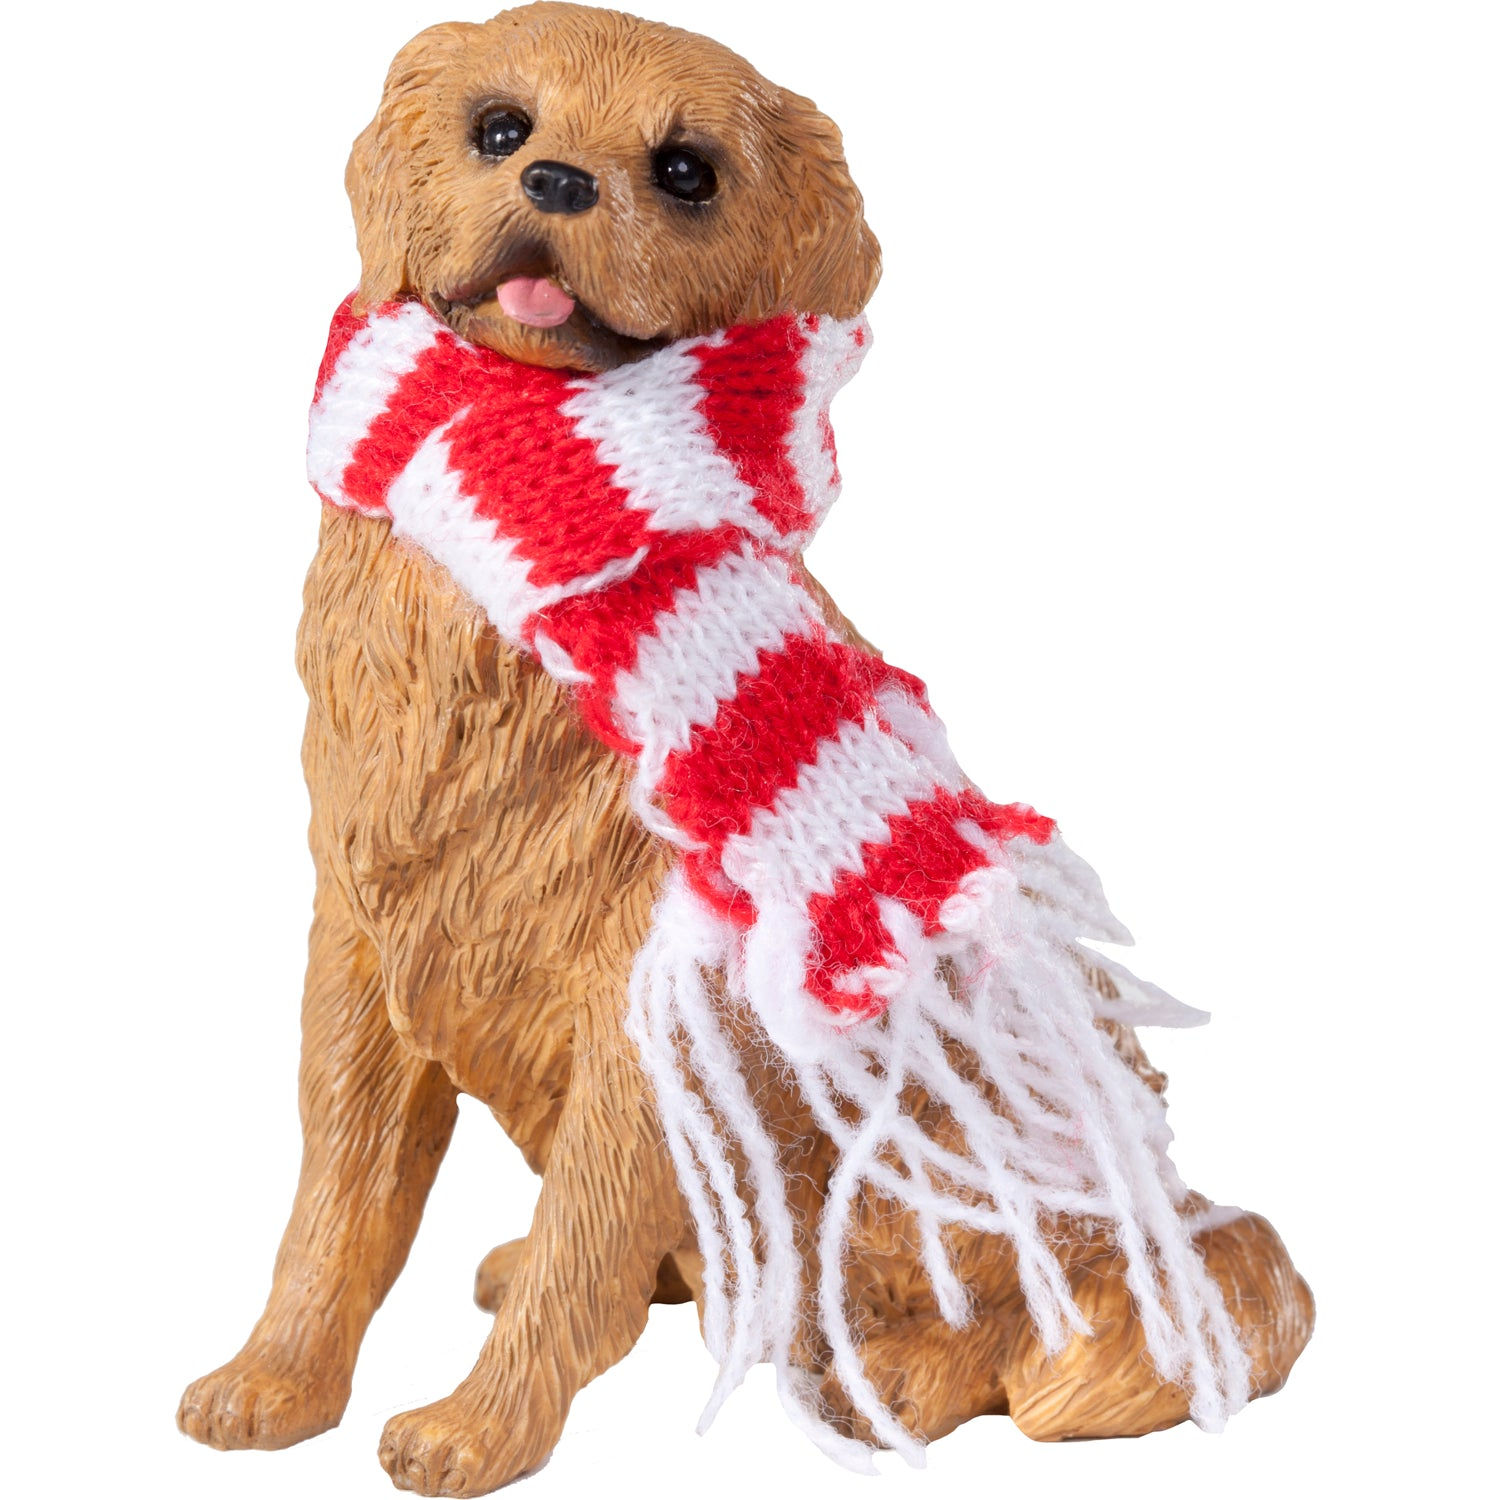 Sandicast Sitting Golden Retriever w/ Scarf Christmas Dog Ornament